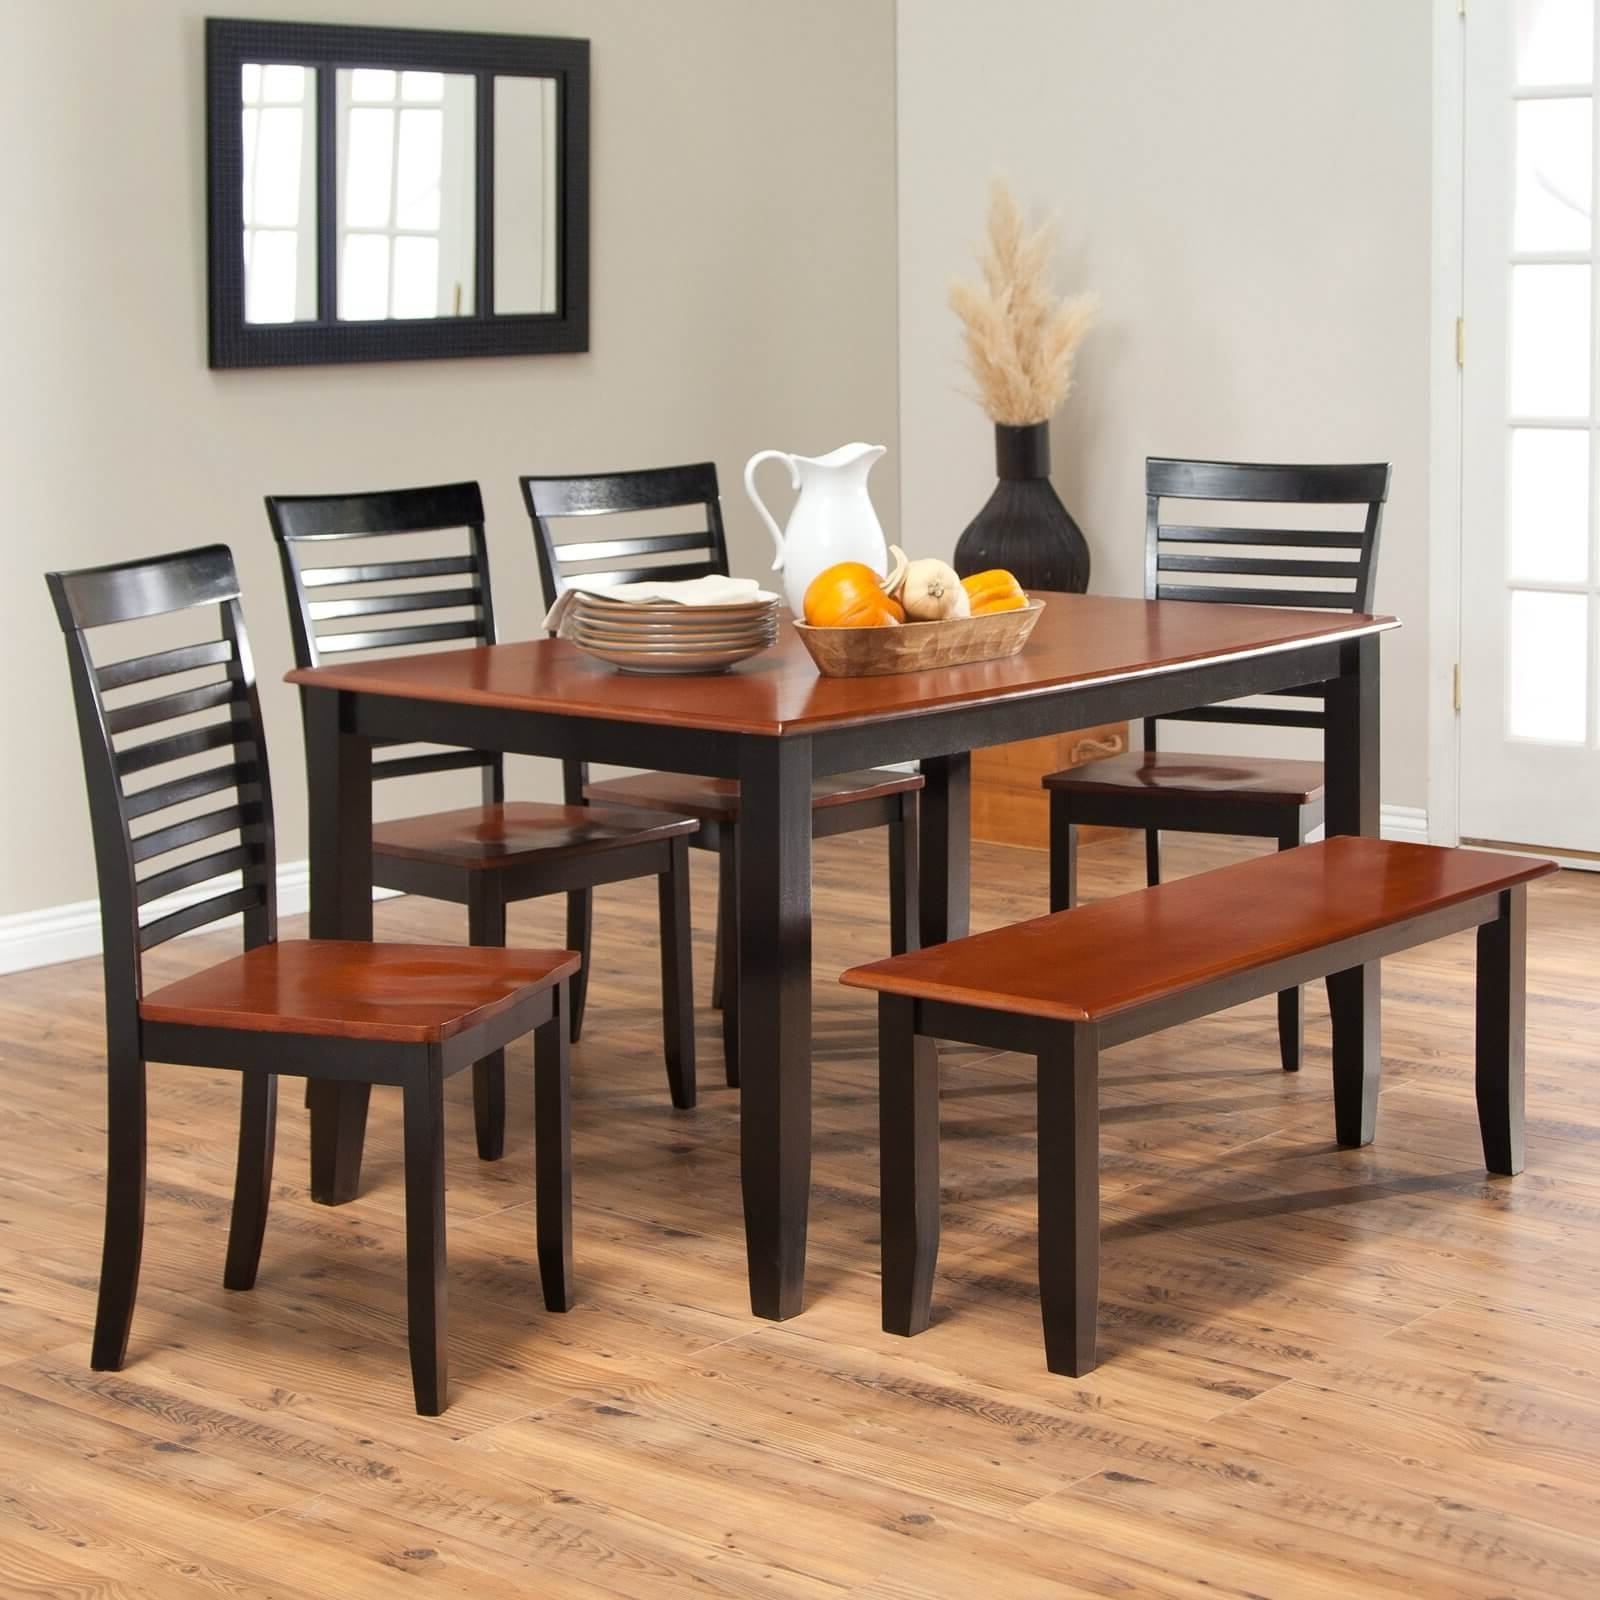 26 Dining Room Sets (Big And Small) With Bench Seating (2018) Regarding Fashionable Small Dark Wood Dining Tables (View 15 of 25)